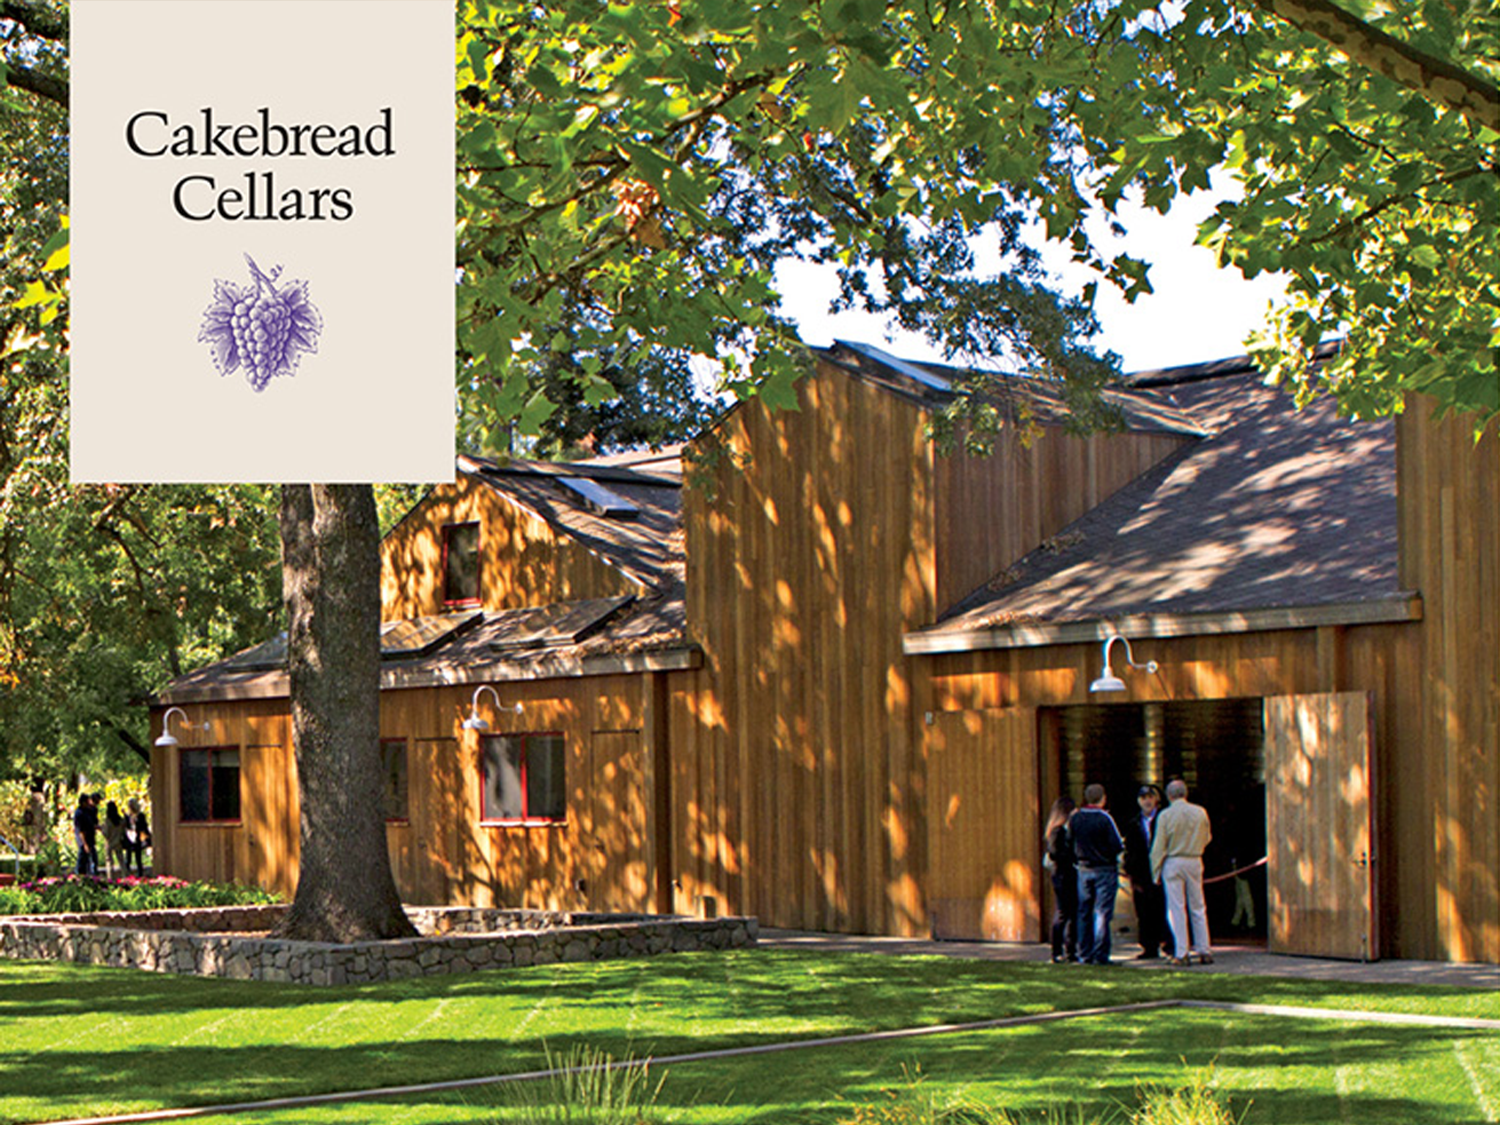 Image of a barn with green grass and people standing outside of it featuring the Cakebread Cellars logo.